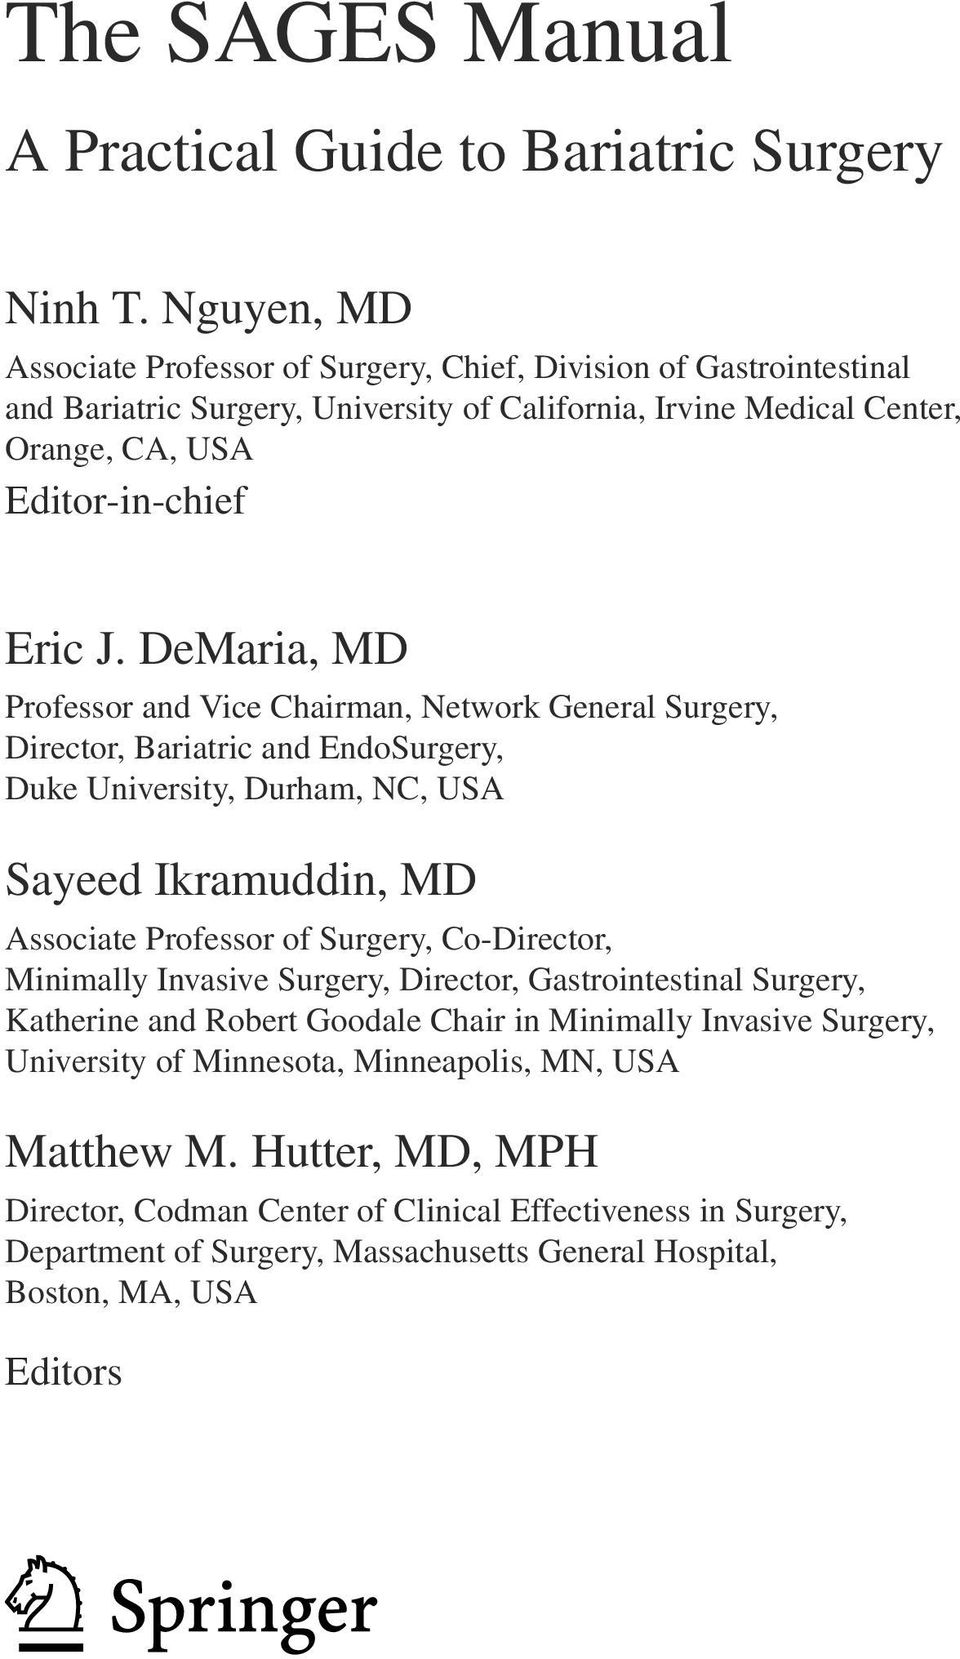 The SAGES Manual  A Practical Guide to Bariatric Surgery - PDF